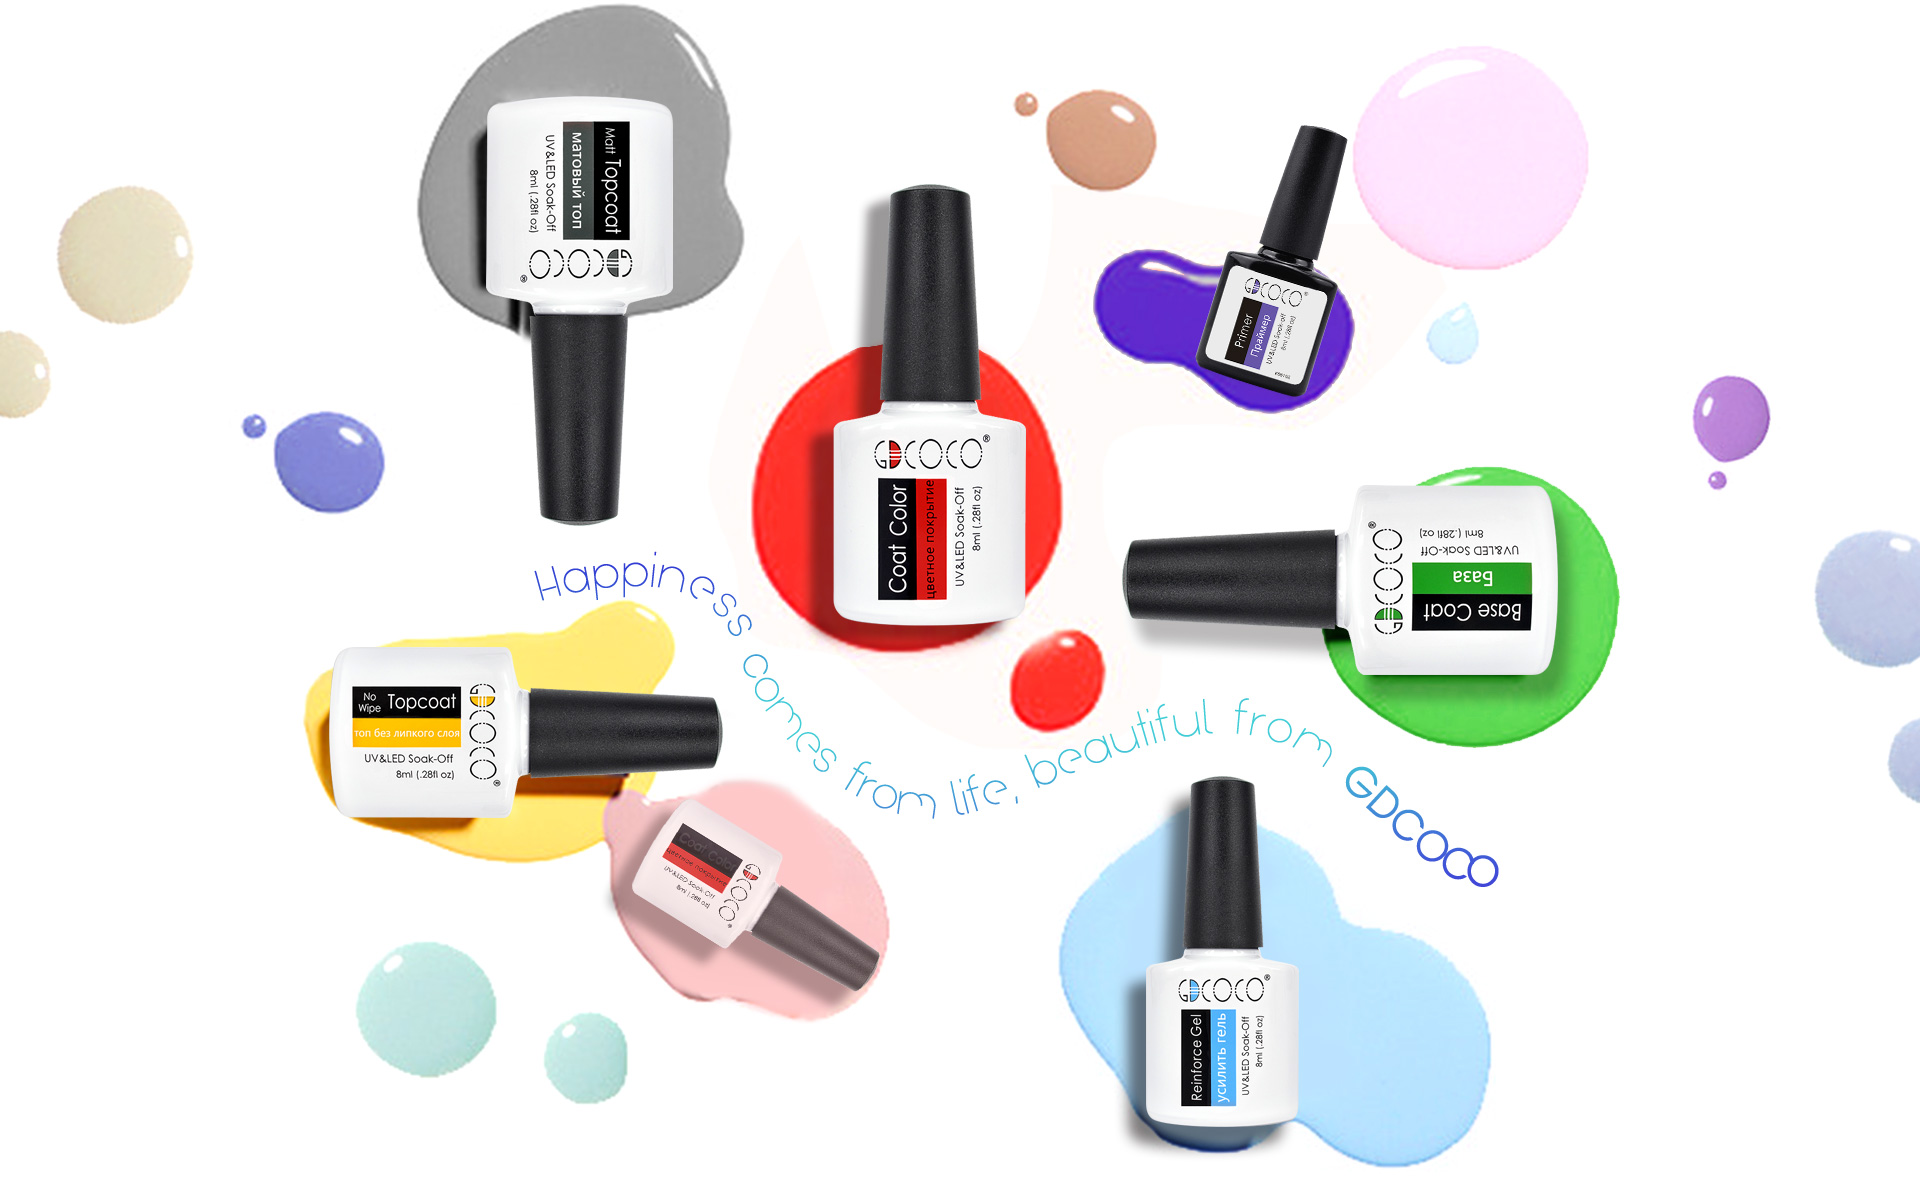 VL Nail Art Store - Small Orders Online Store, Hot Selling and more ...